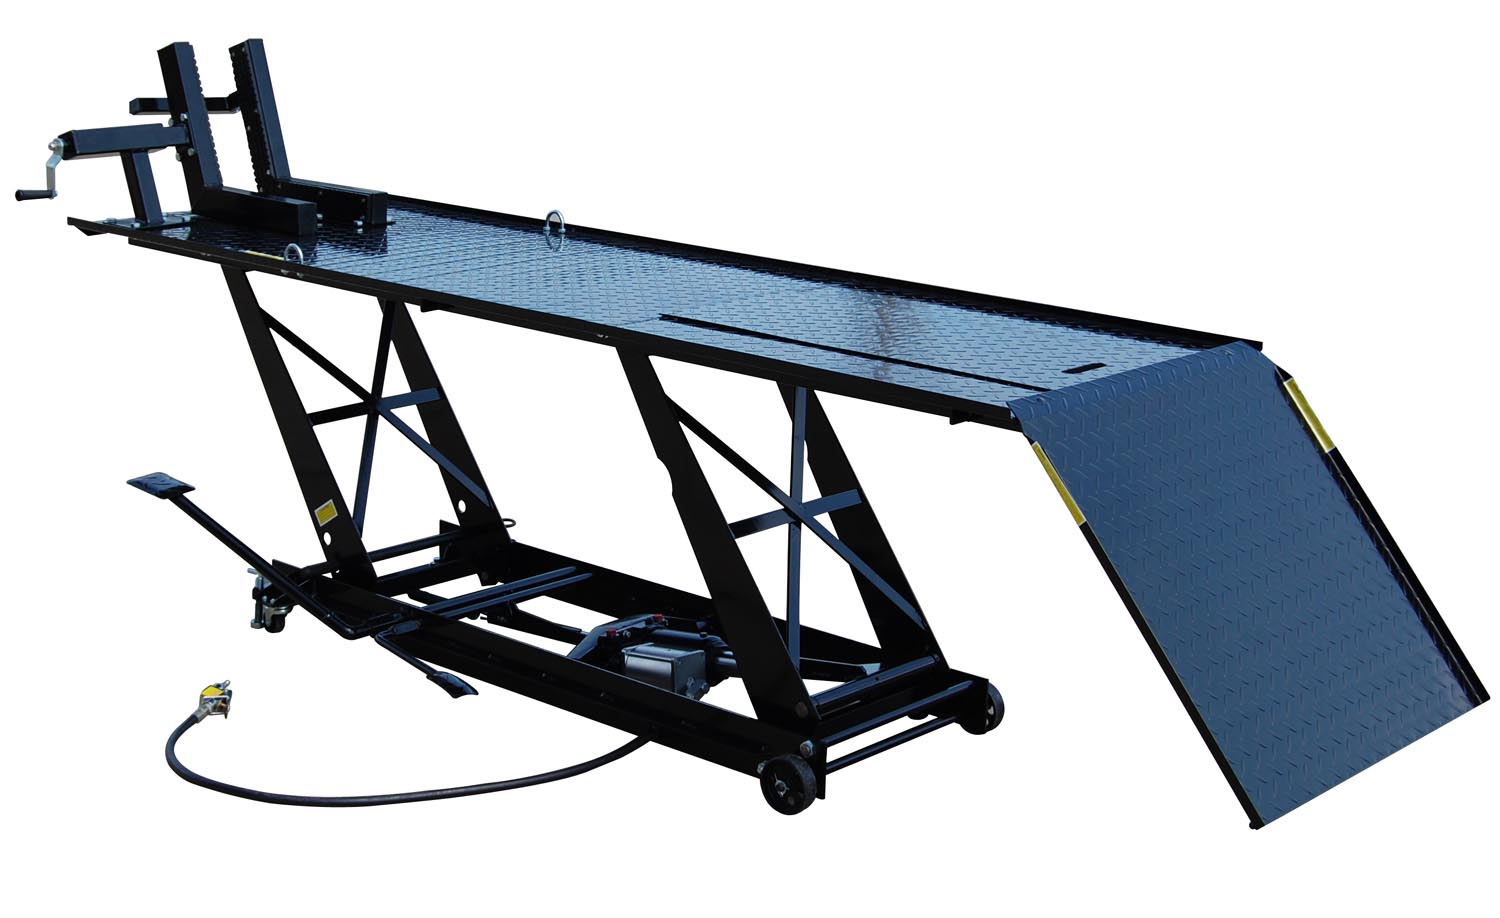 Titan 1000L Light Duty Motorcycle Lift Table - FREE SHIPPING